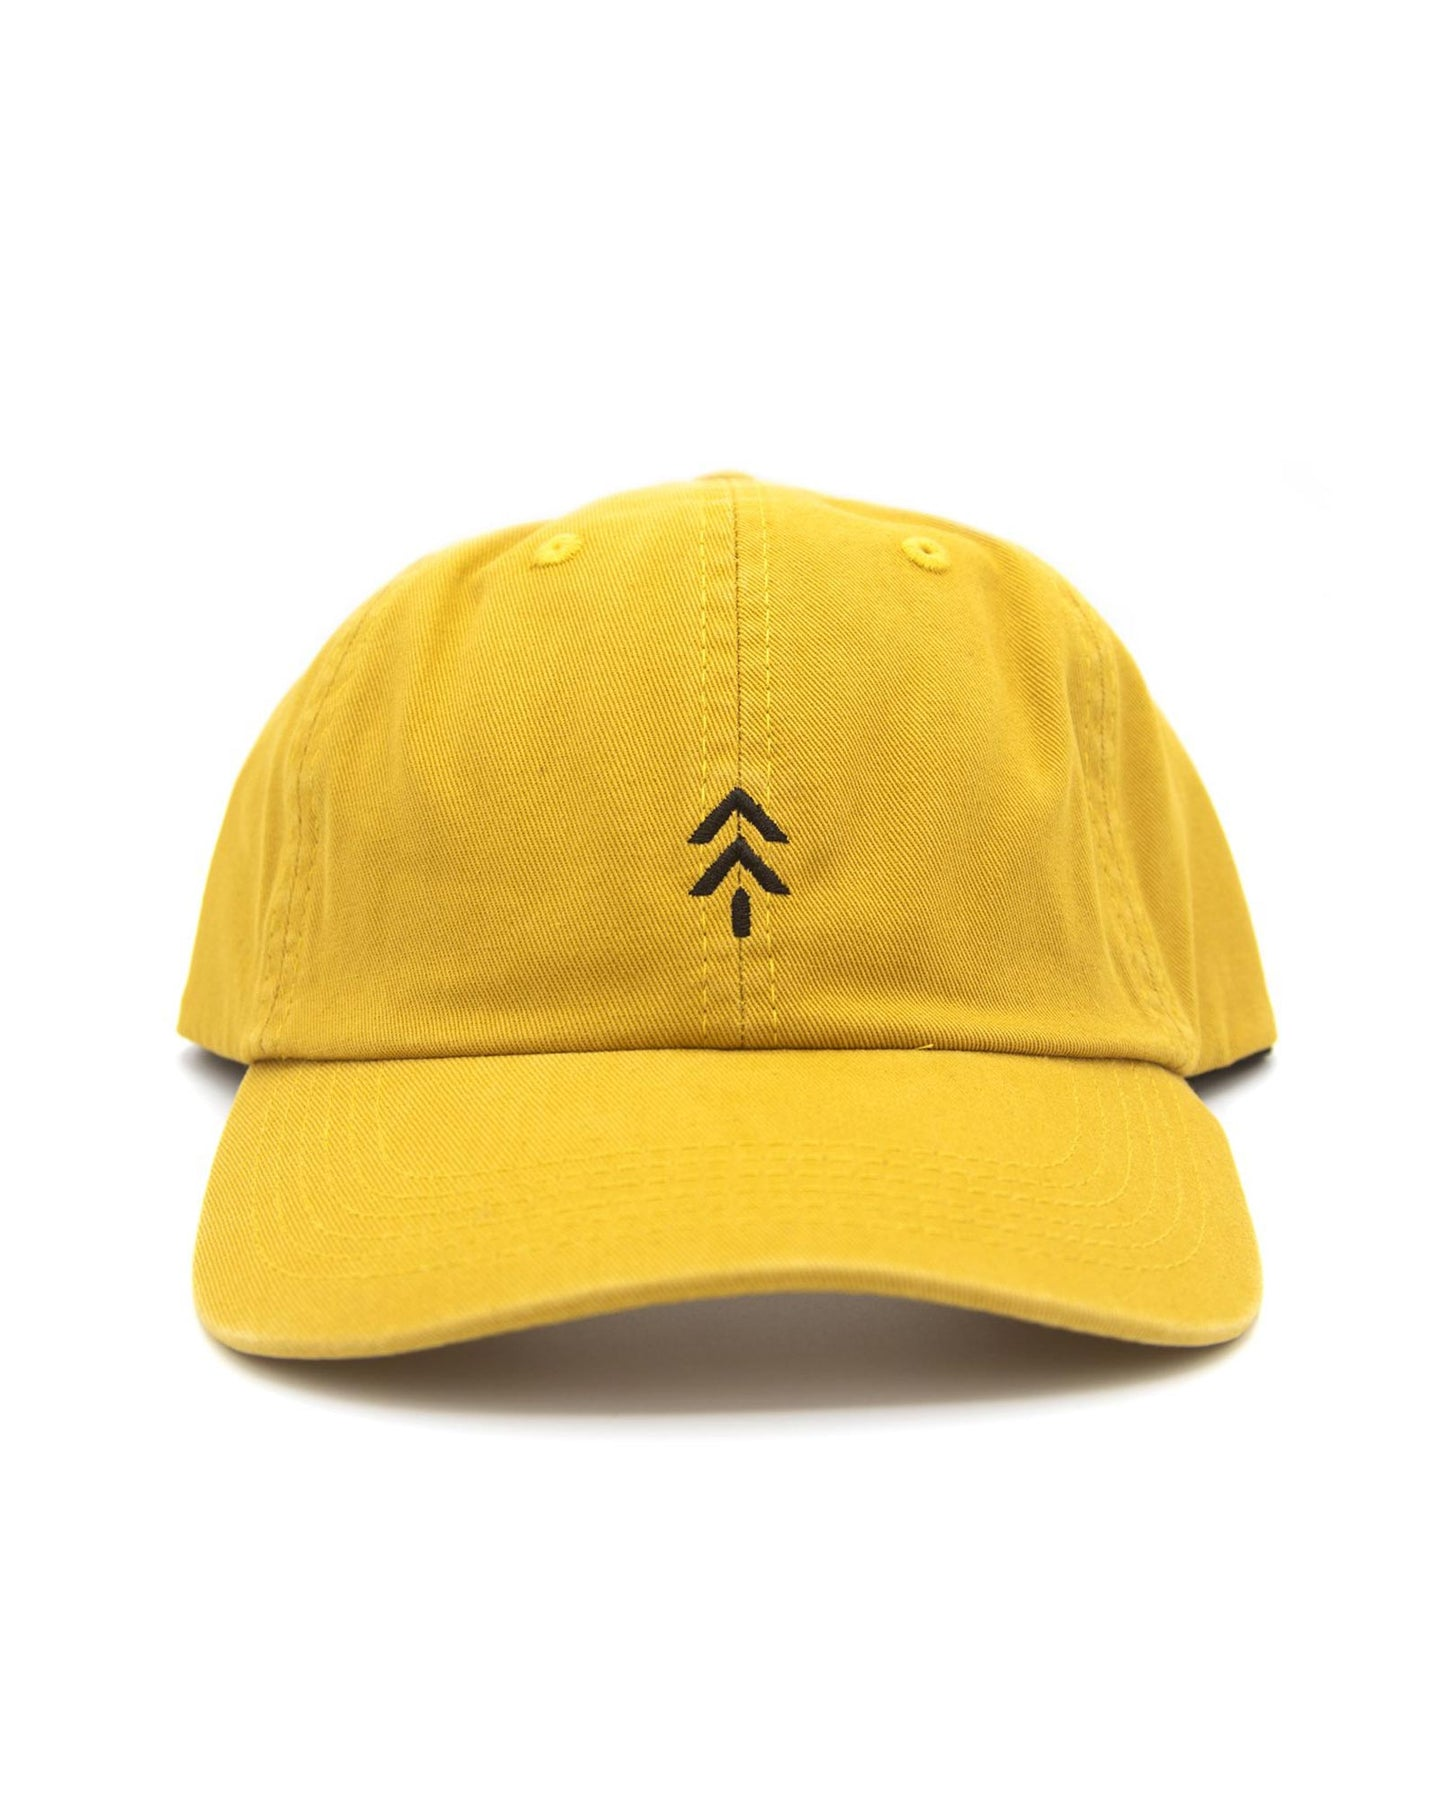 PARKS PROJECT TRAIL ARROW BASEBALL HAT|HTC01011